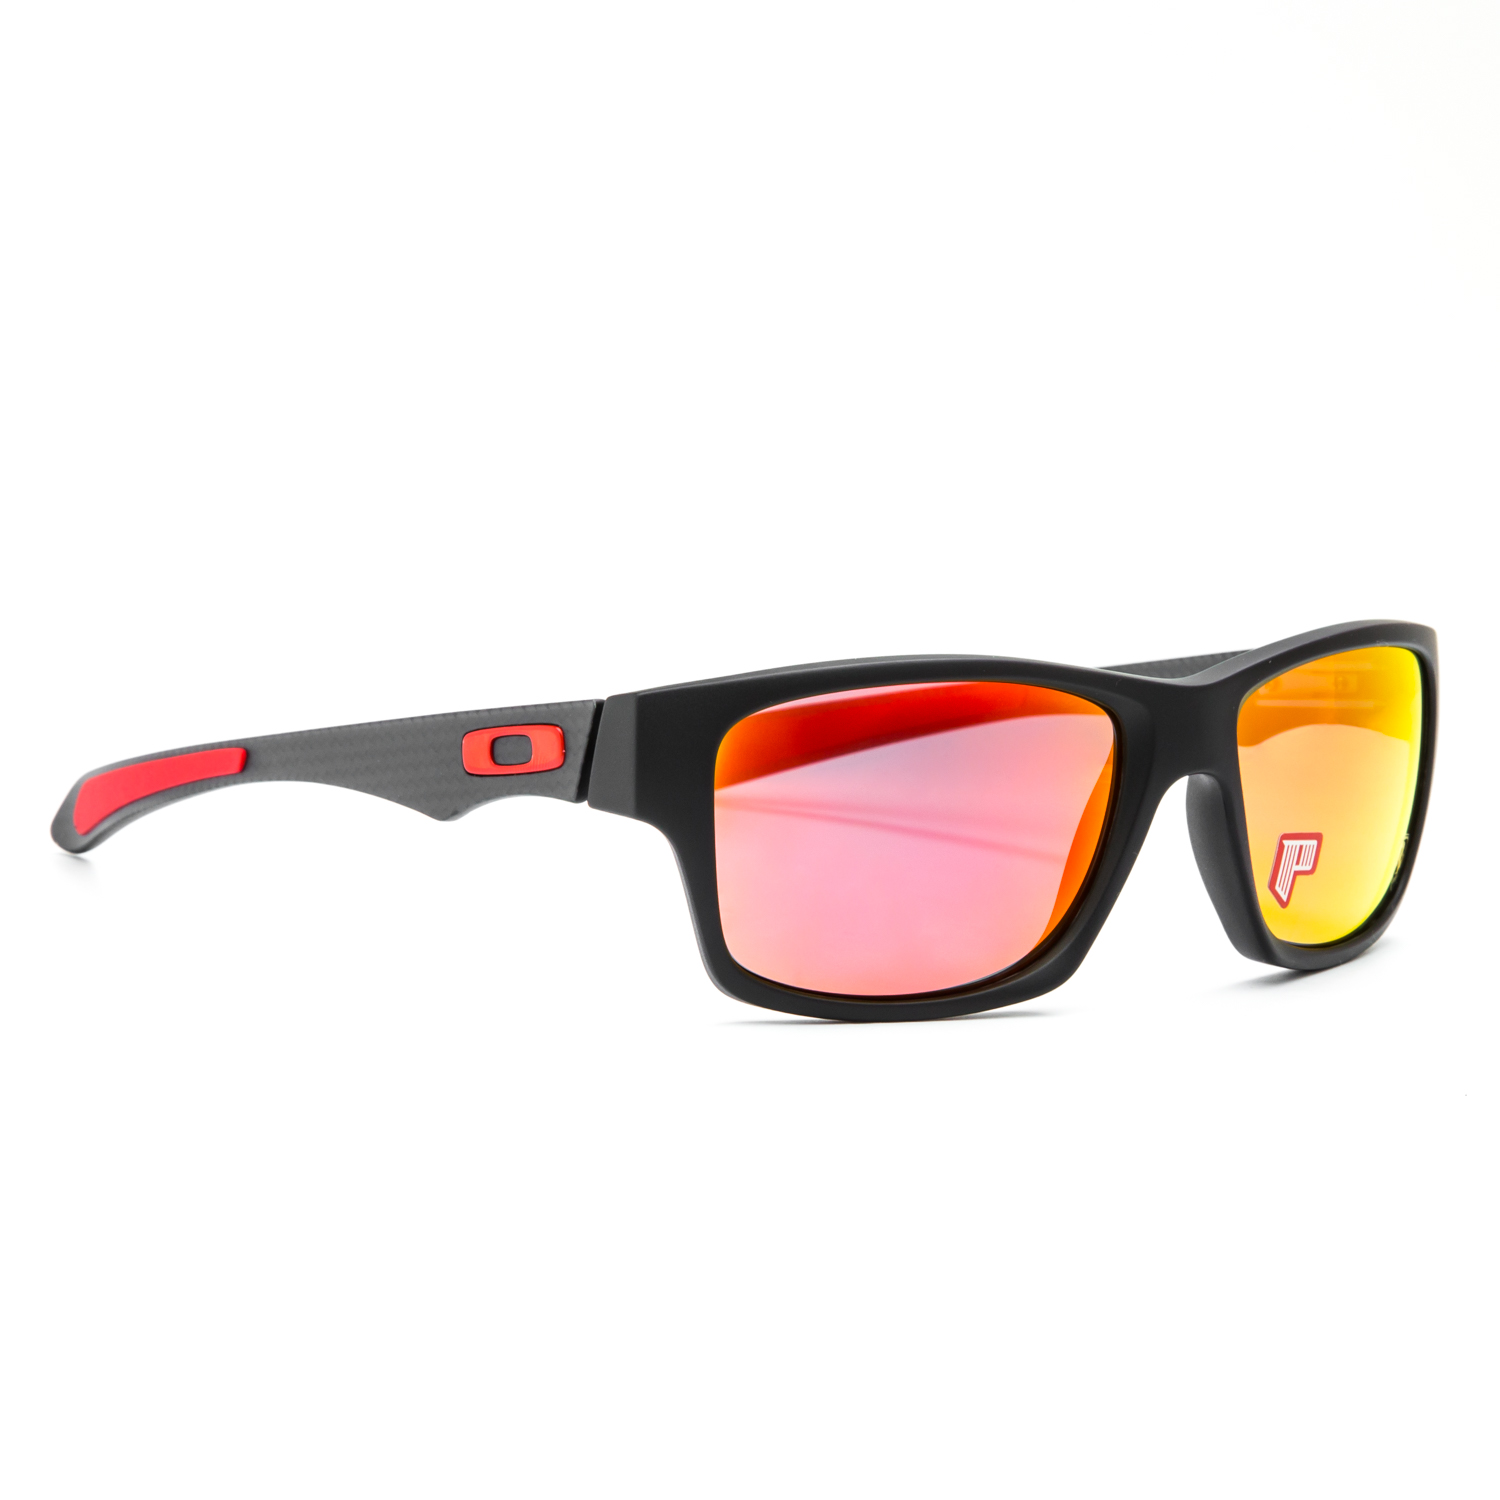 4fbe0cafac9 Oakley Ferrari Jupiter Carbon Sunglasses OO9220-06 Carbon   Ruby ...